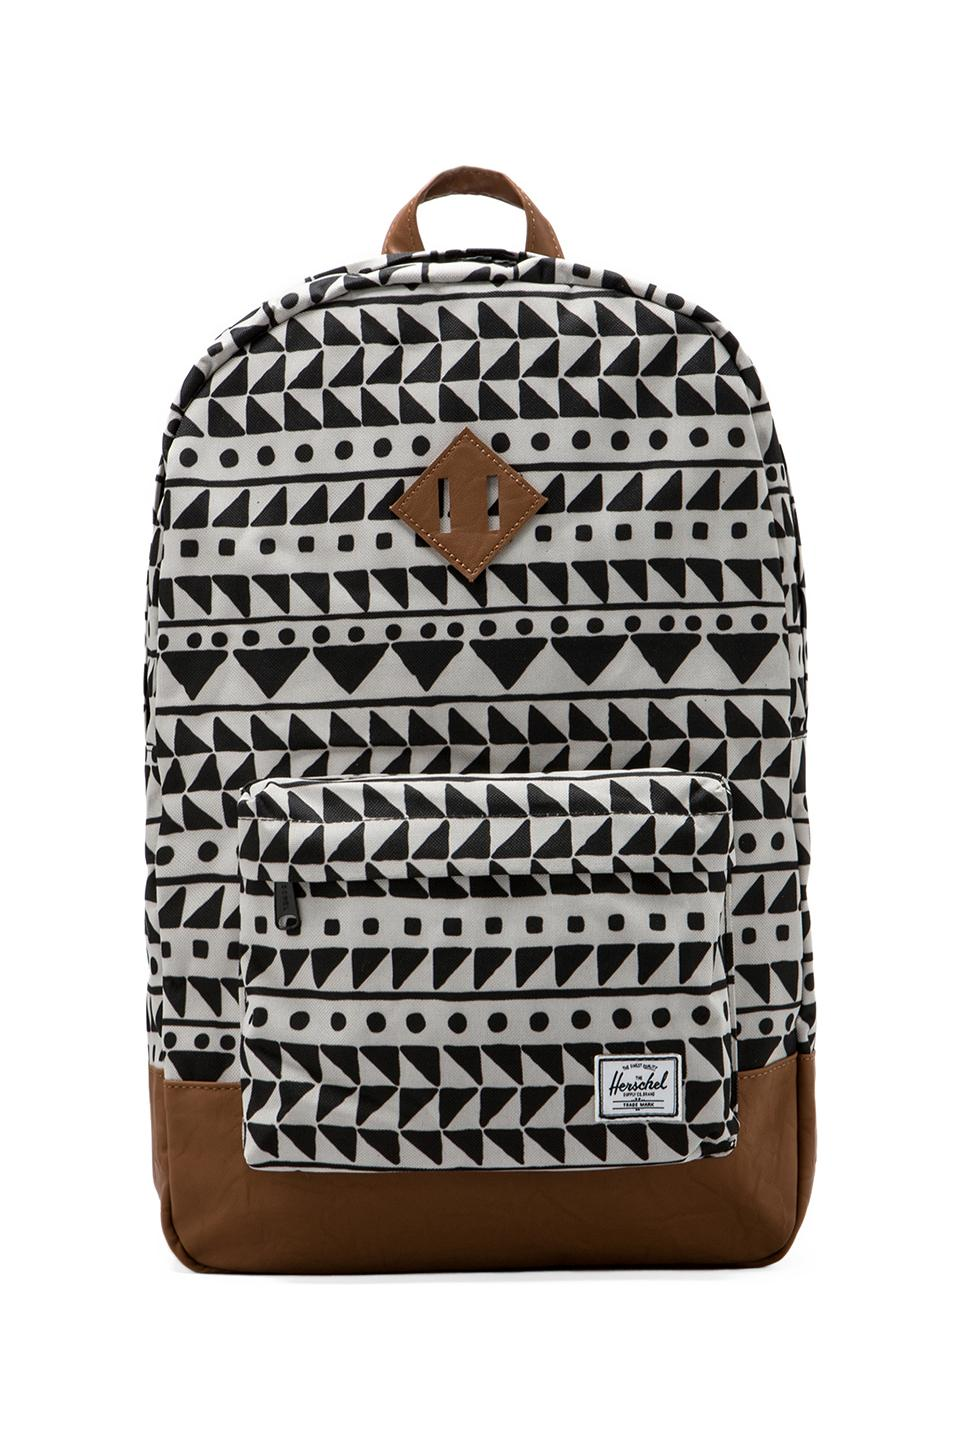 Herschel Supply Co. Heritage Backpack in Chevron Black